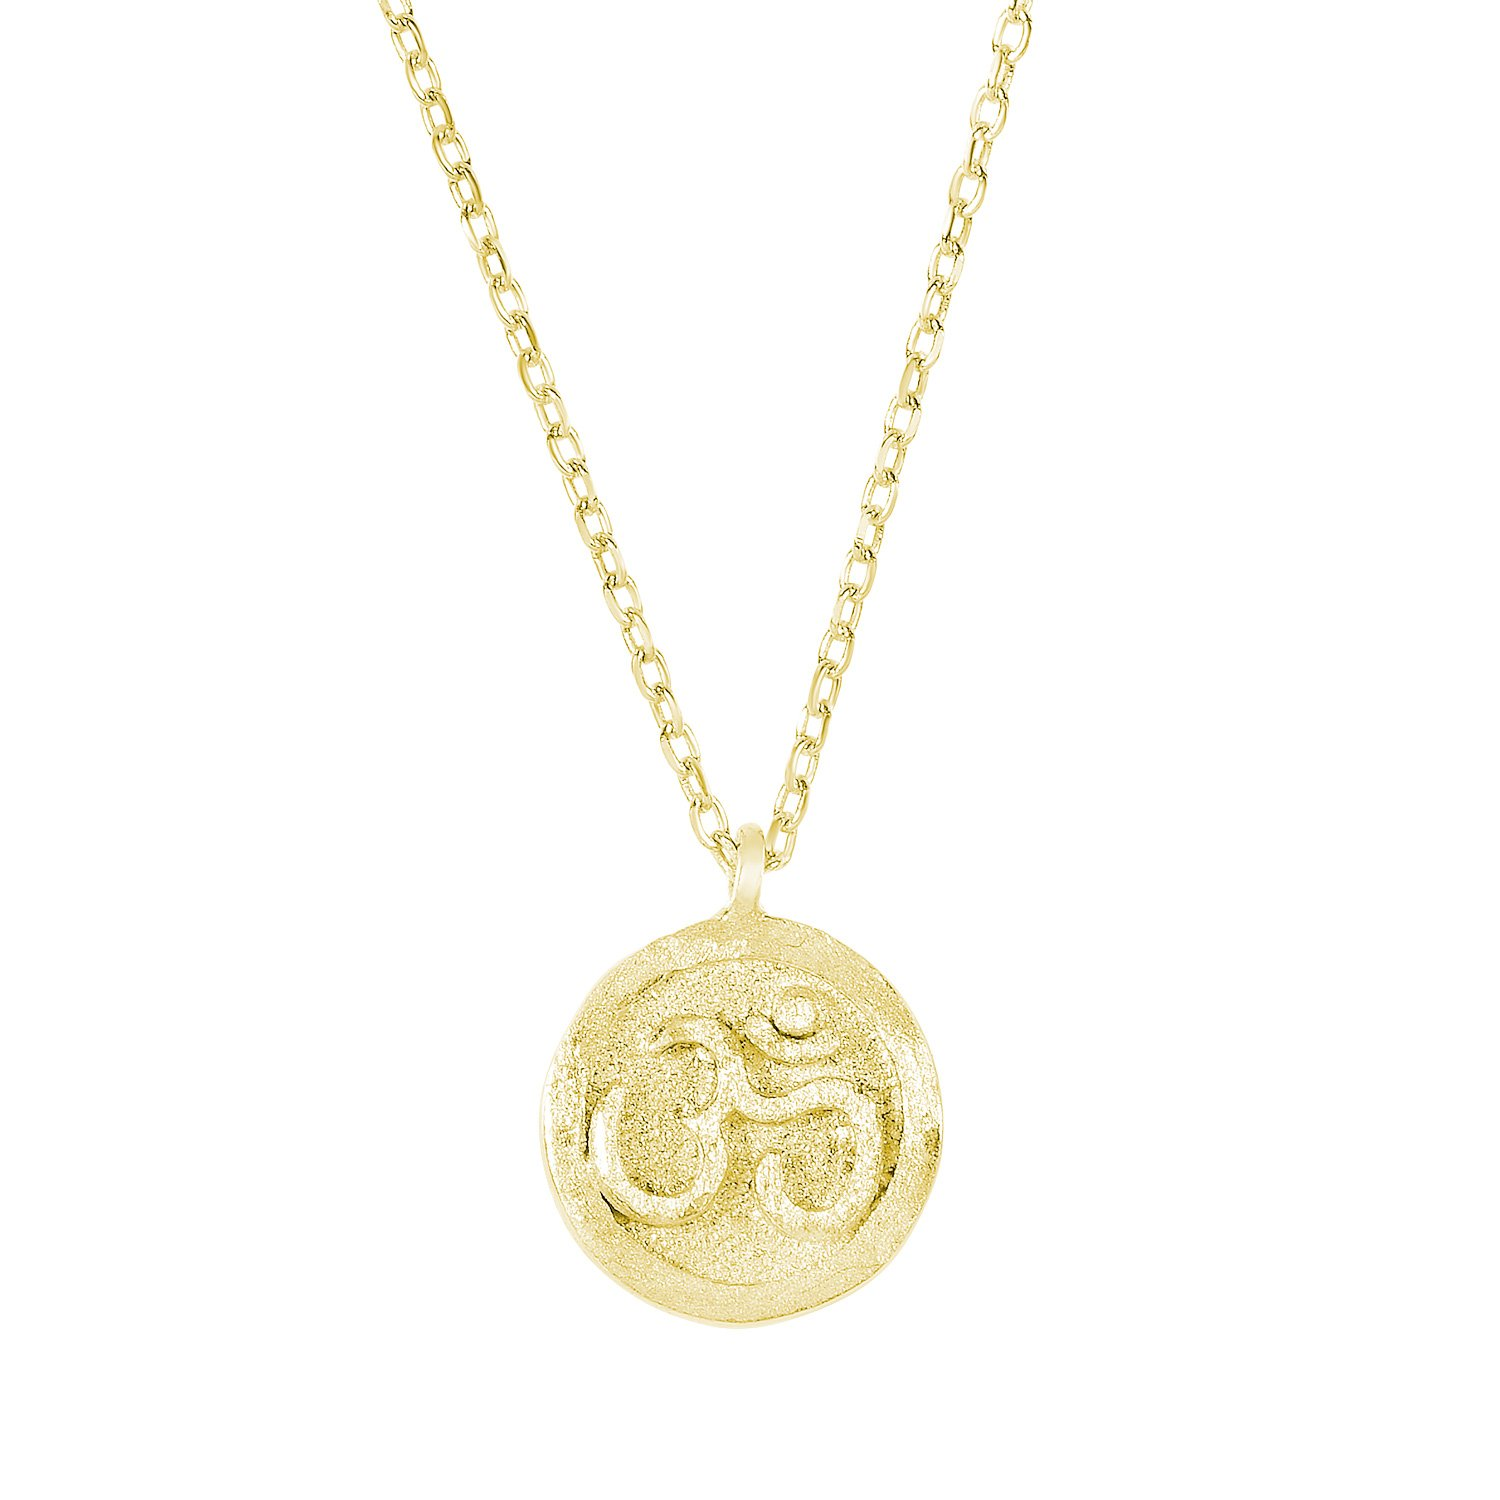 14k Yellow Gold Plated 925 Sterling Silver Matte Finish Textured OHM Om Aum Pendant Necklace,18''